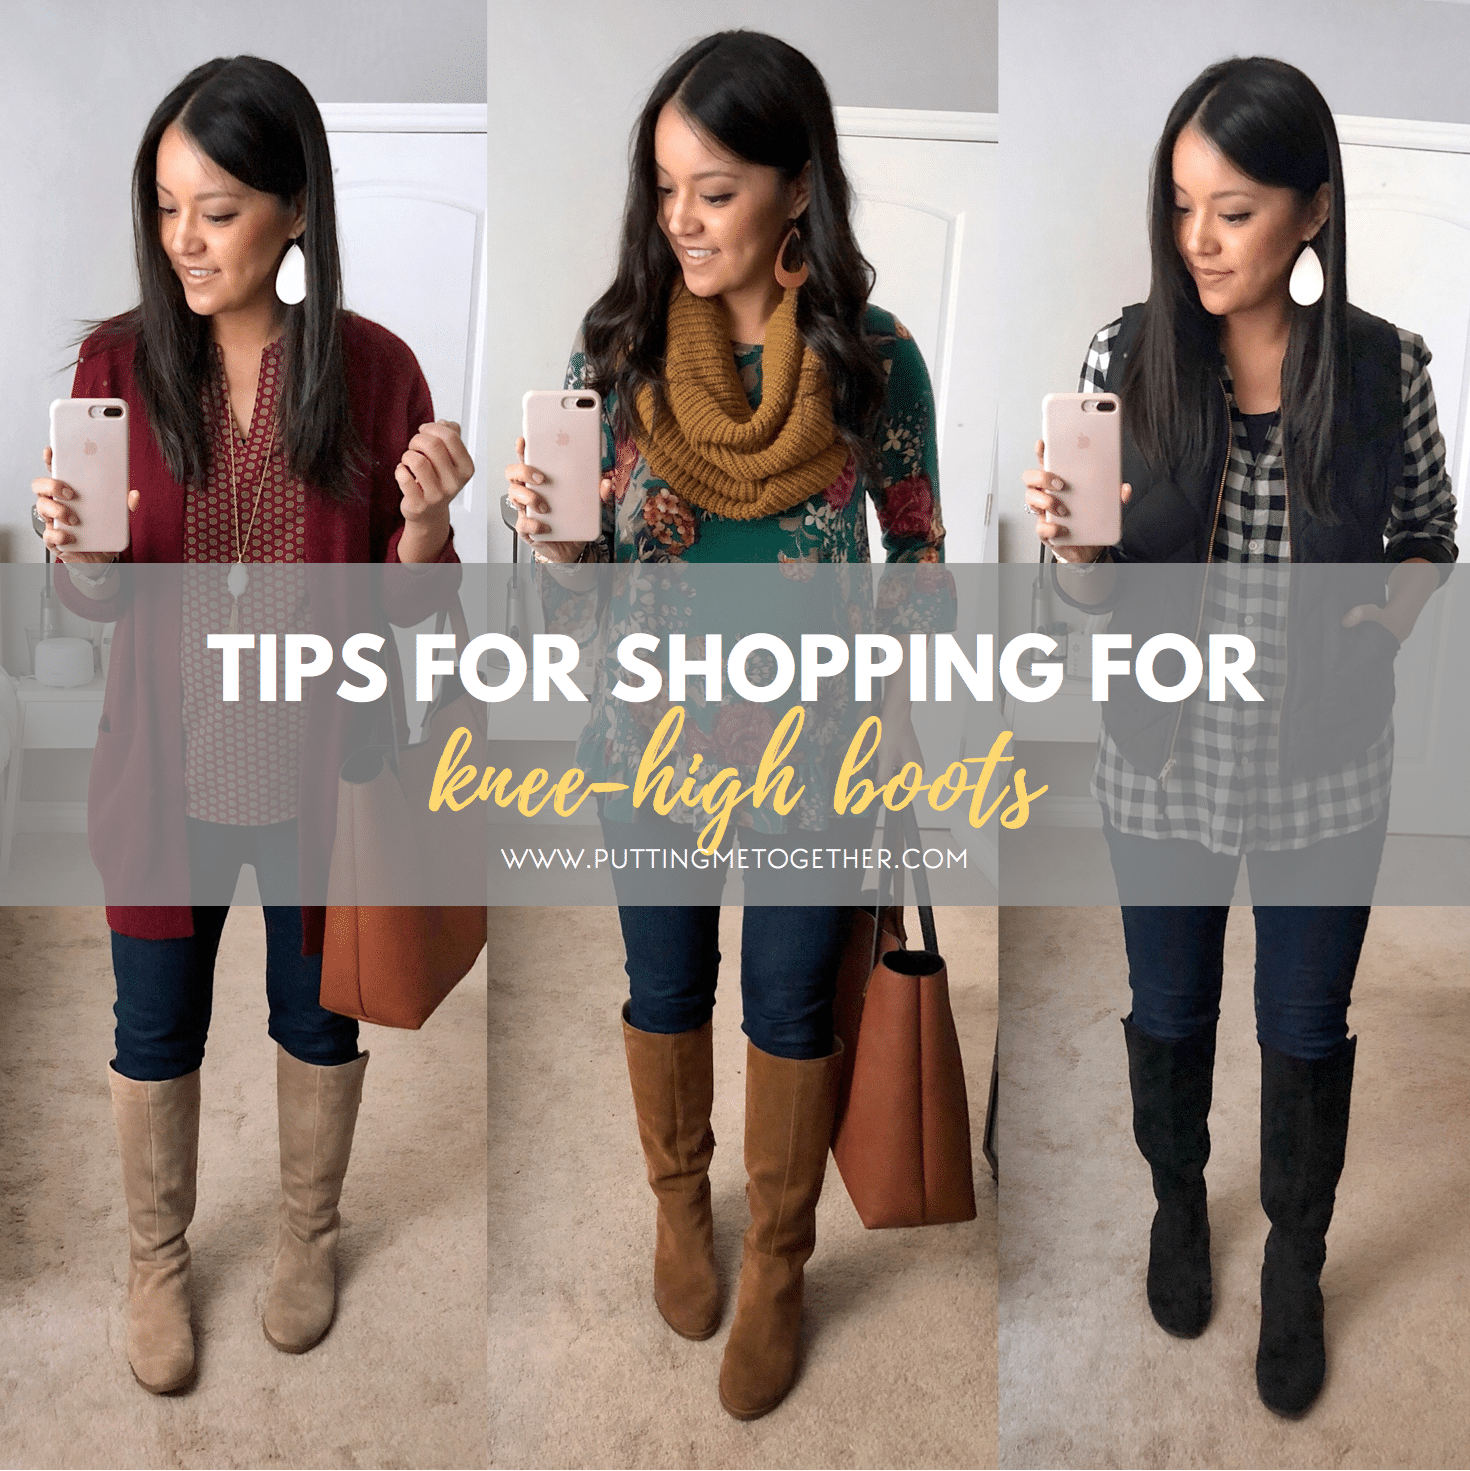 Tips for Finding the Right Pair of Knee High Boots